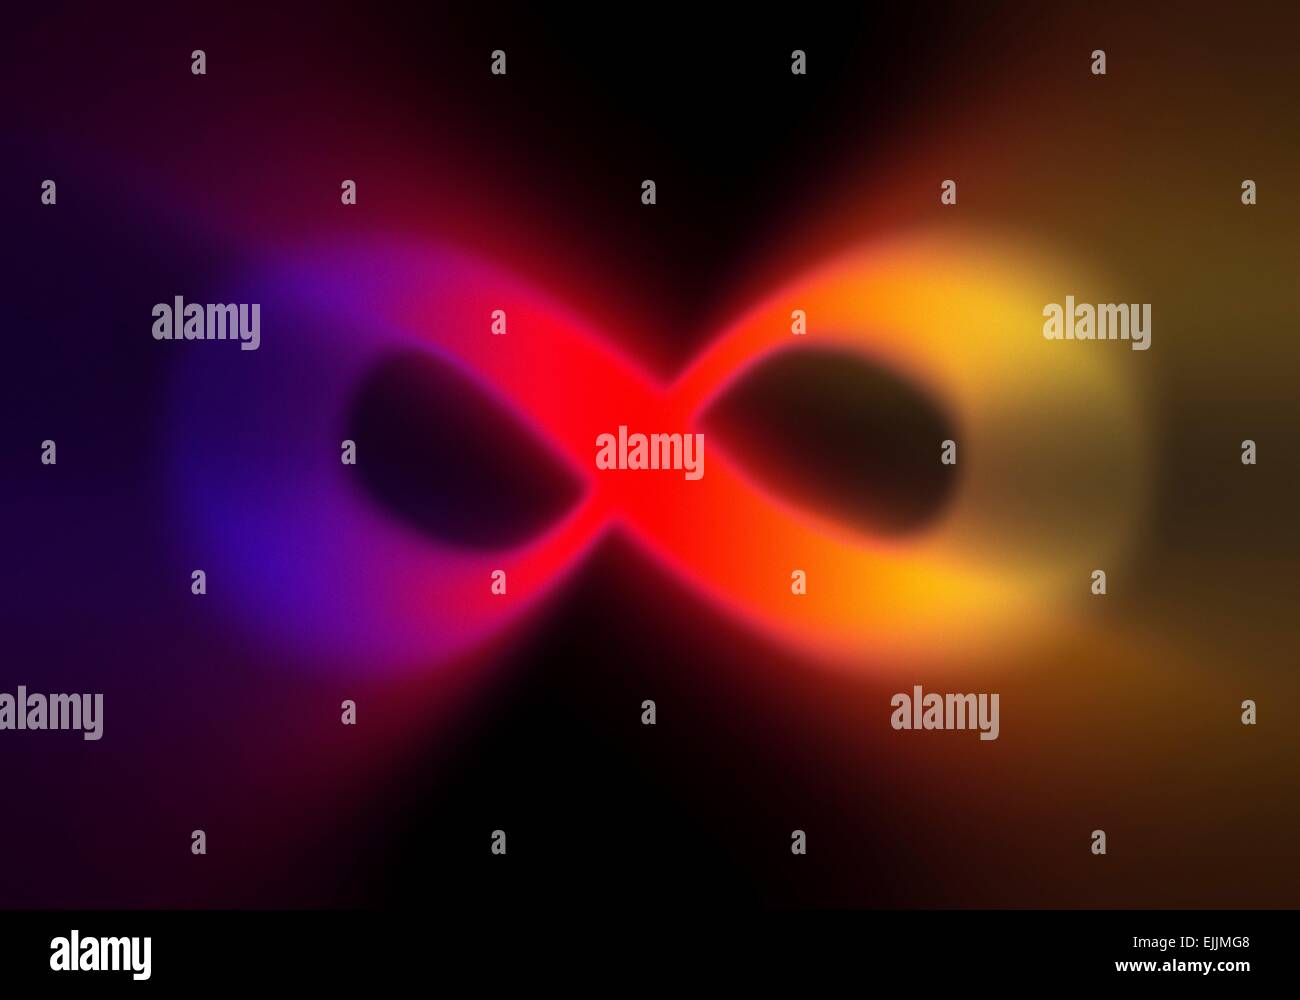 Infinity Symbol Mathematics Stock Photos Infinity Symbol